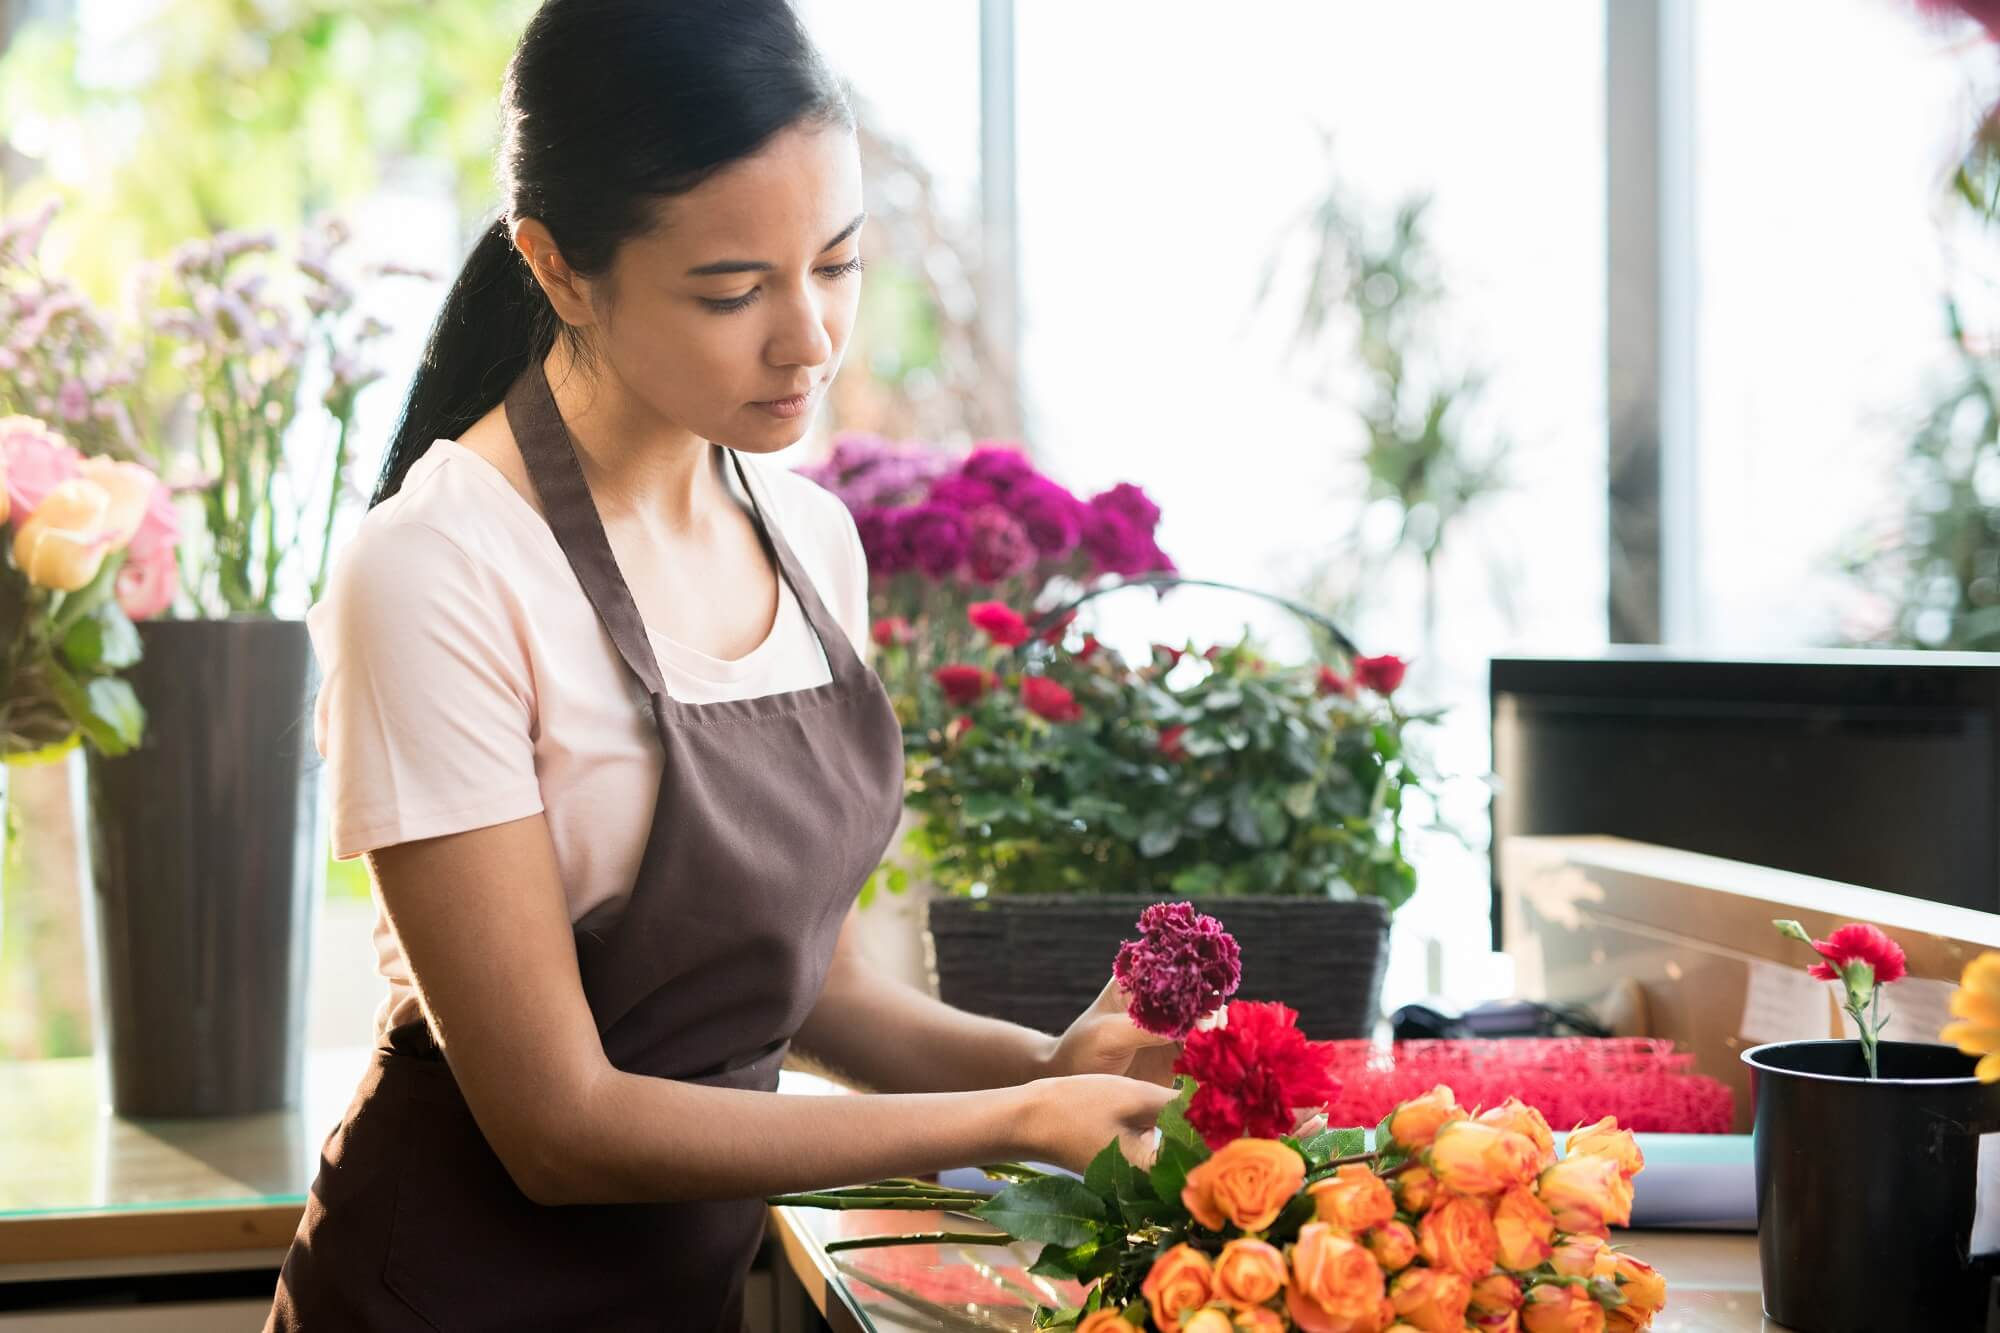 Young brunette florist in workwear sorting fresh roses and carnations on table during work in shop